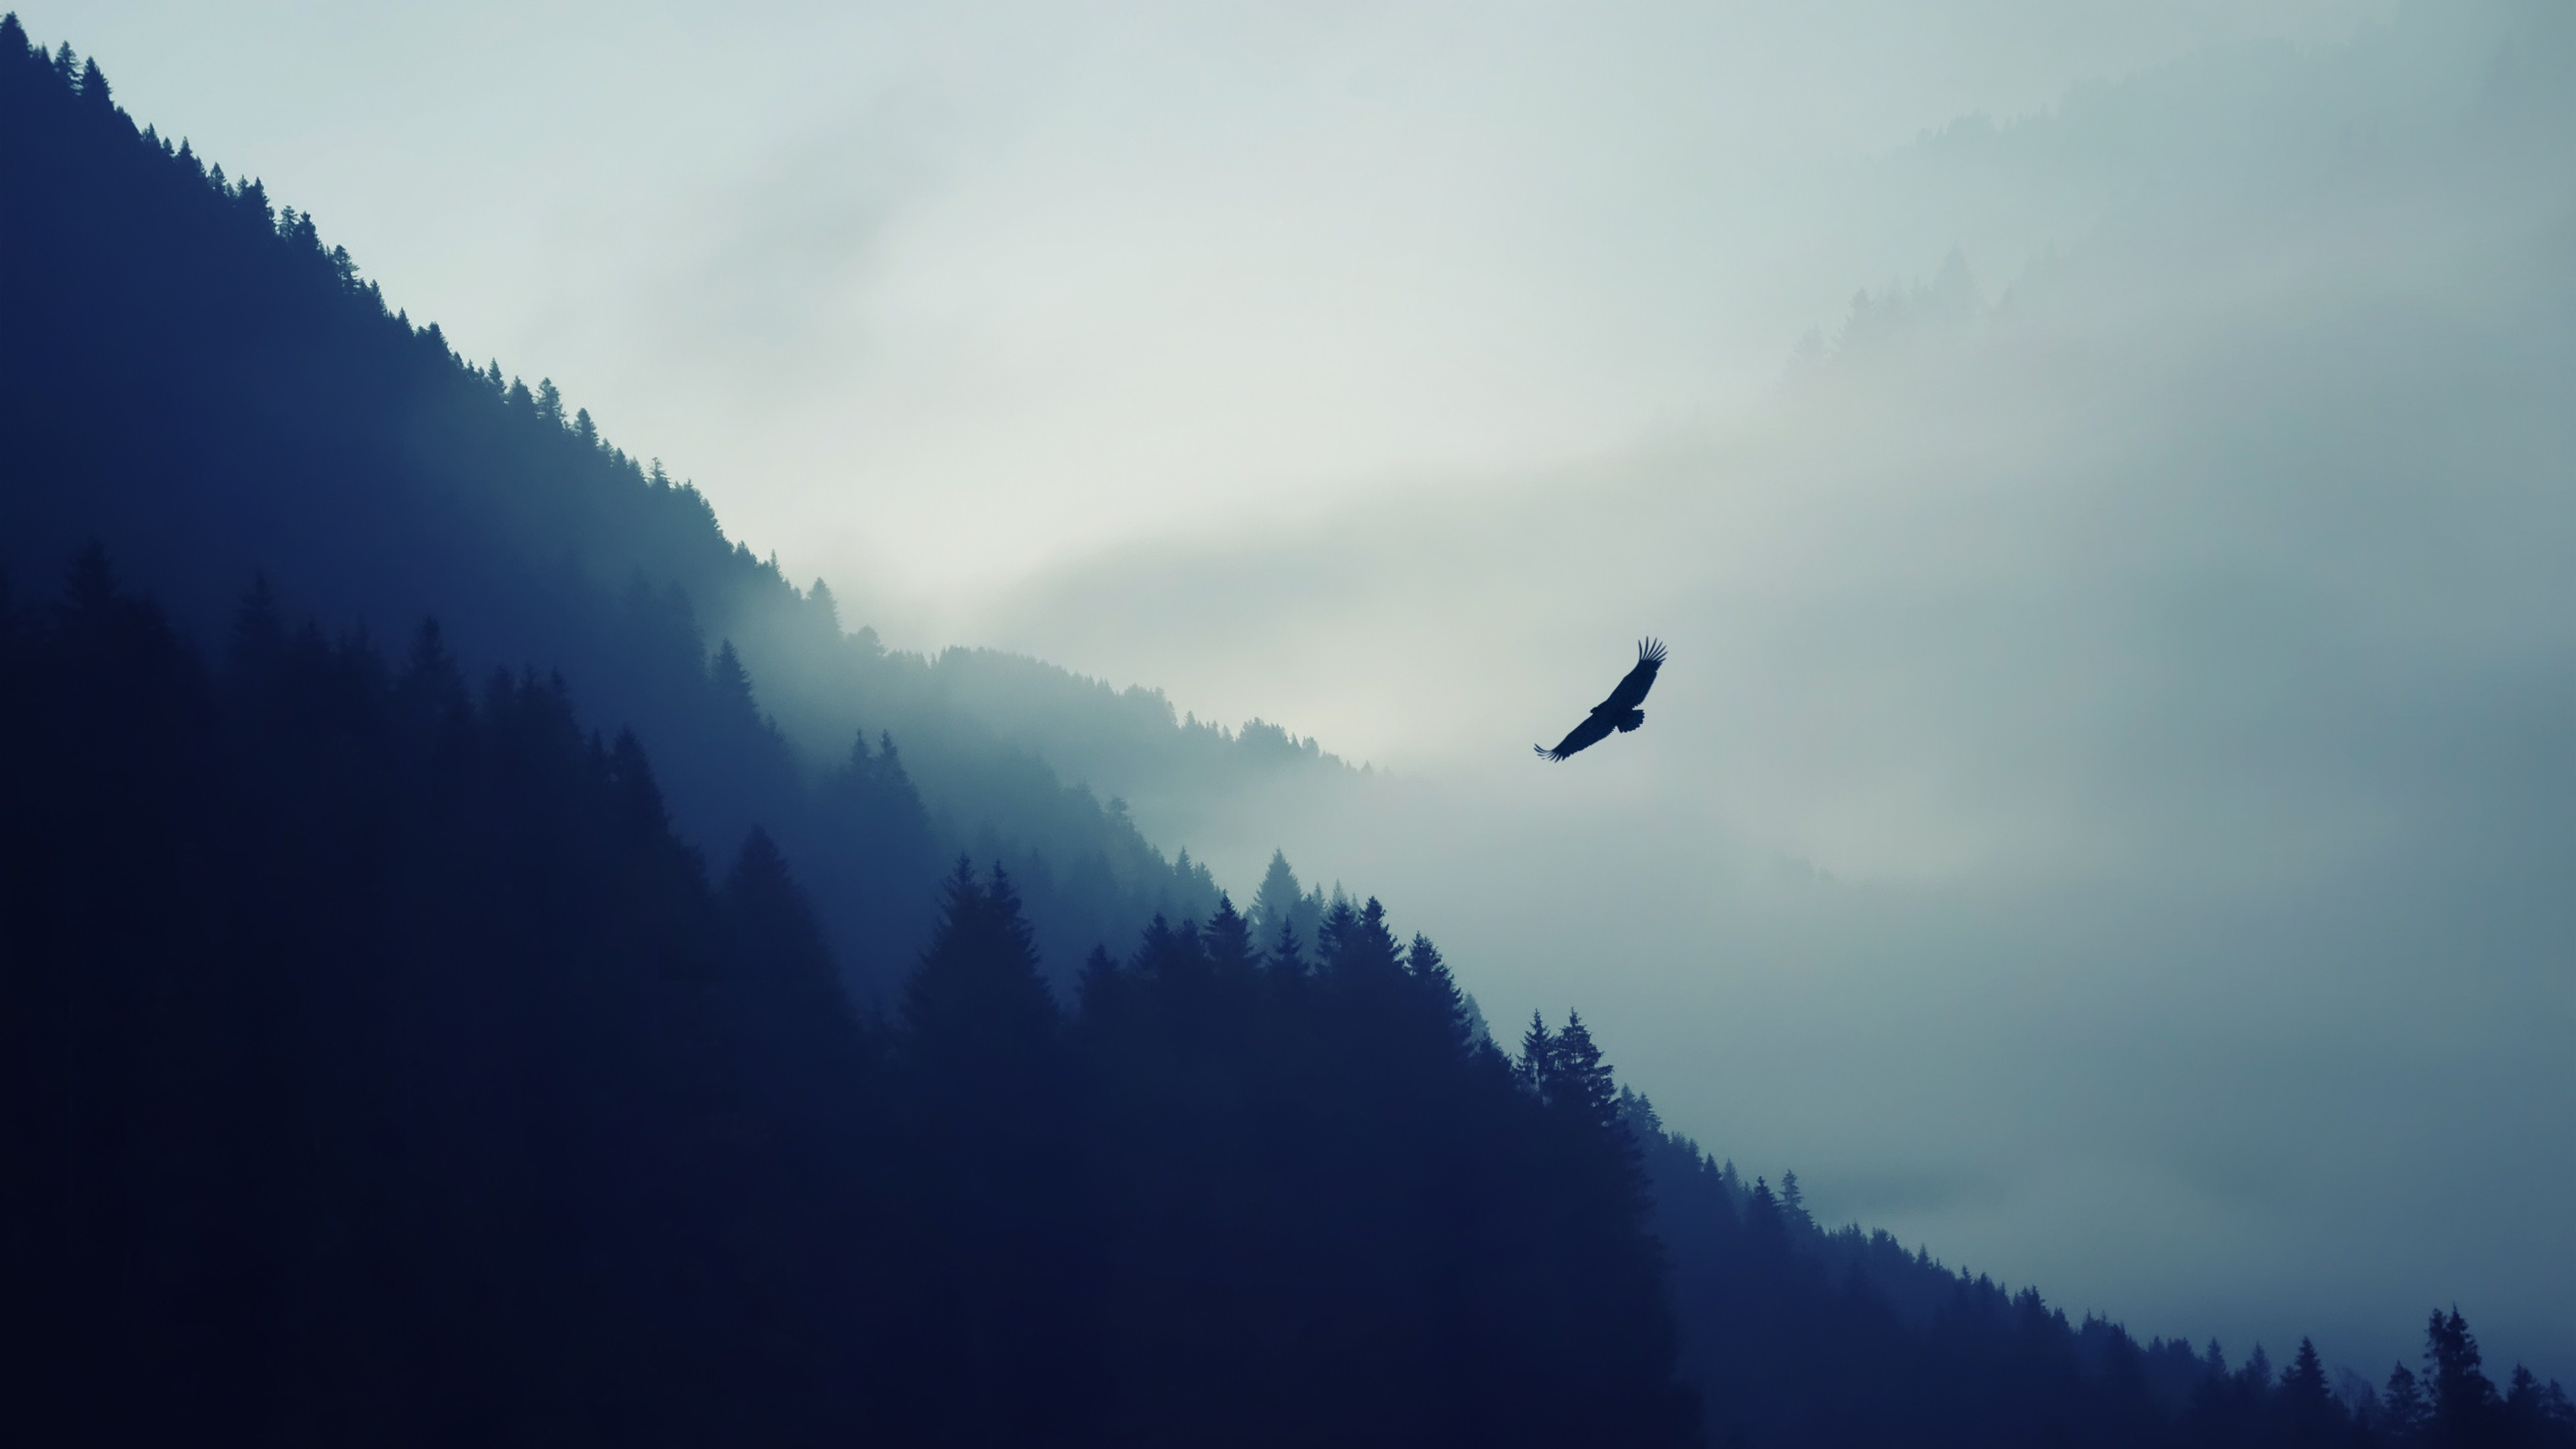 mountain eagle fog landscape ultrahd 4k wallpaper wallpaper background 3840x2160